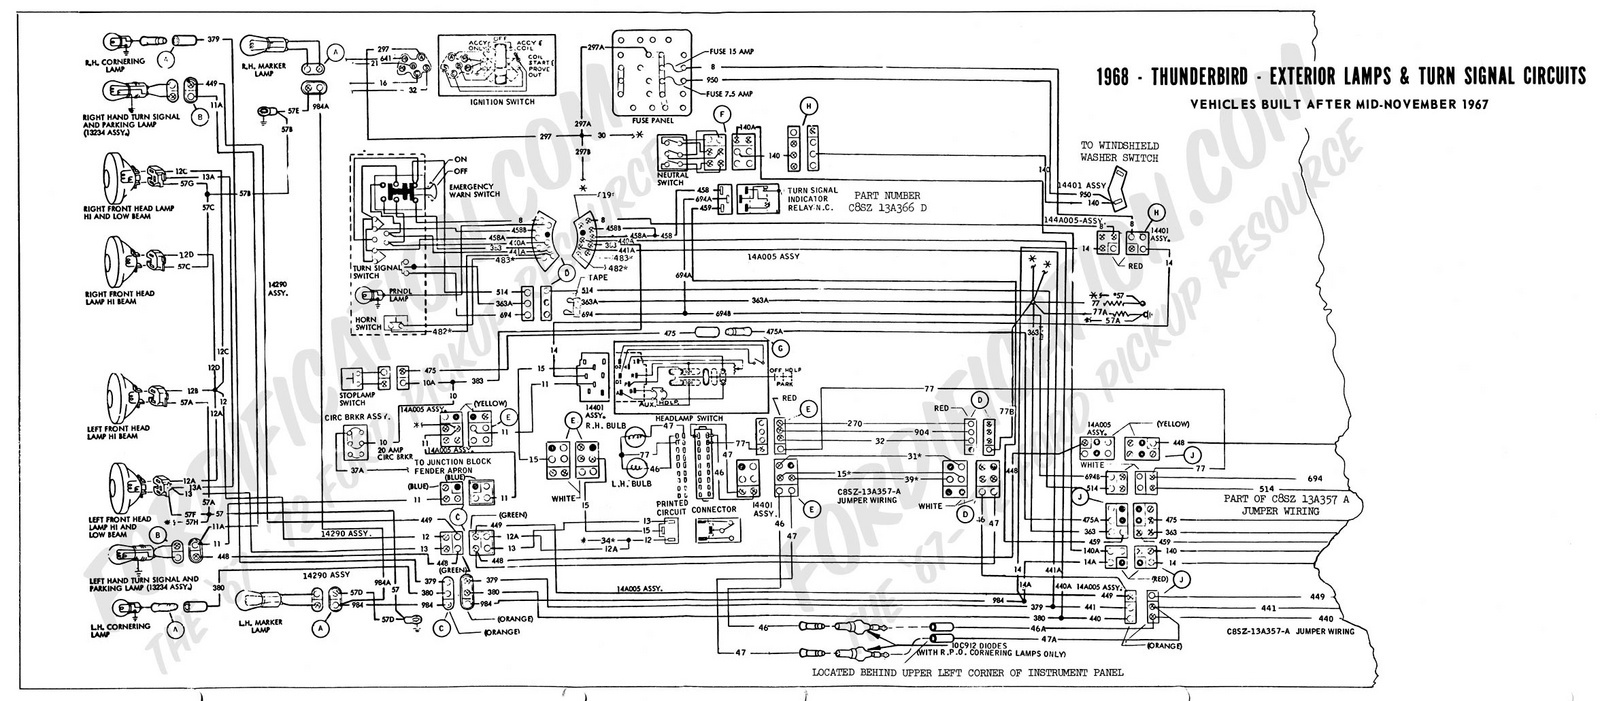 1964 ford ranchero fuse box diagram 1964 ford fairlane fuse box wiring diagram for 1961 ford falcon html #7